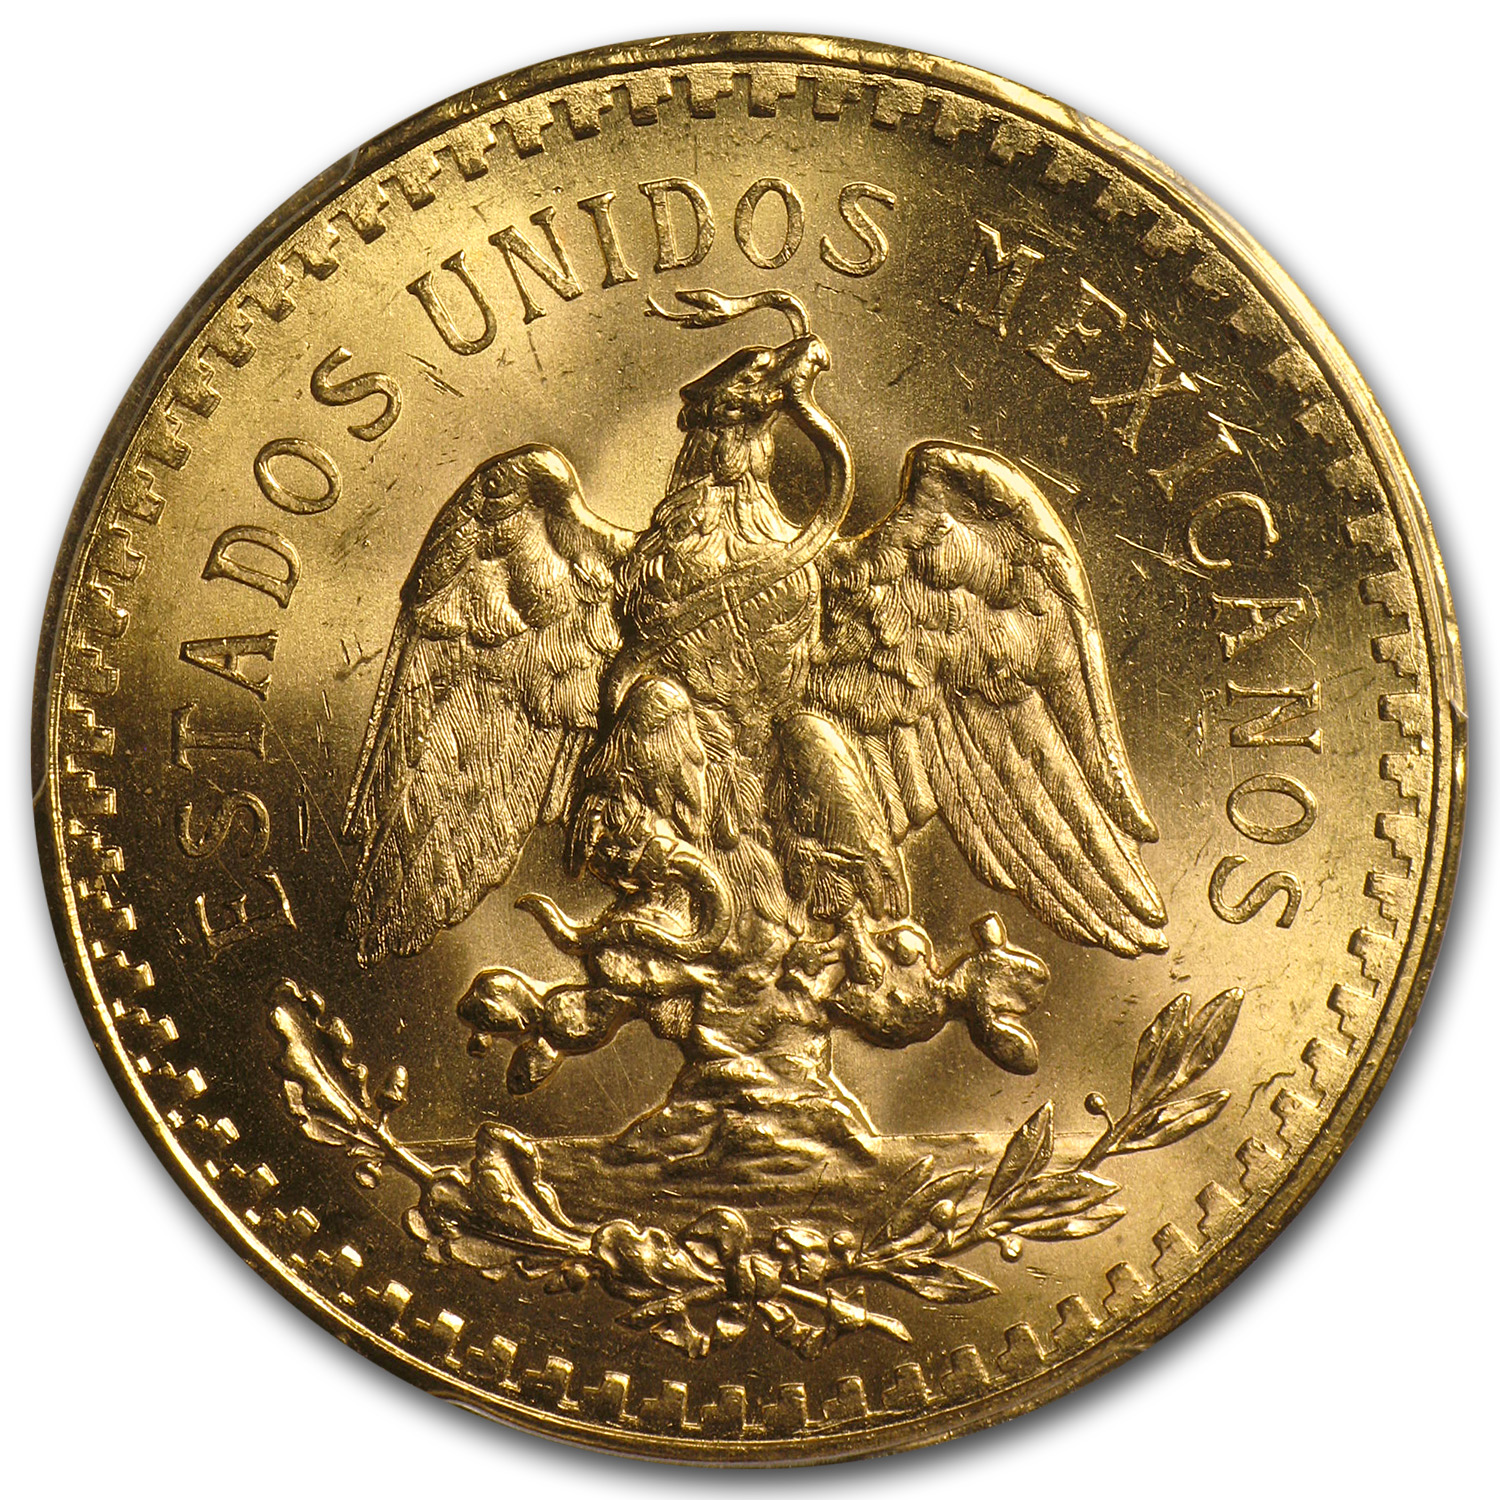 Mexico 1930 50 Pesos Gold Coin - MS-64+ PCGS (Secure Plus!)